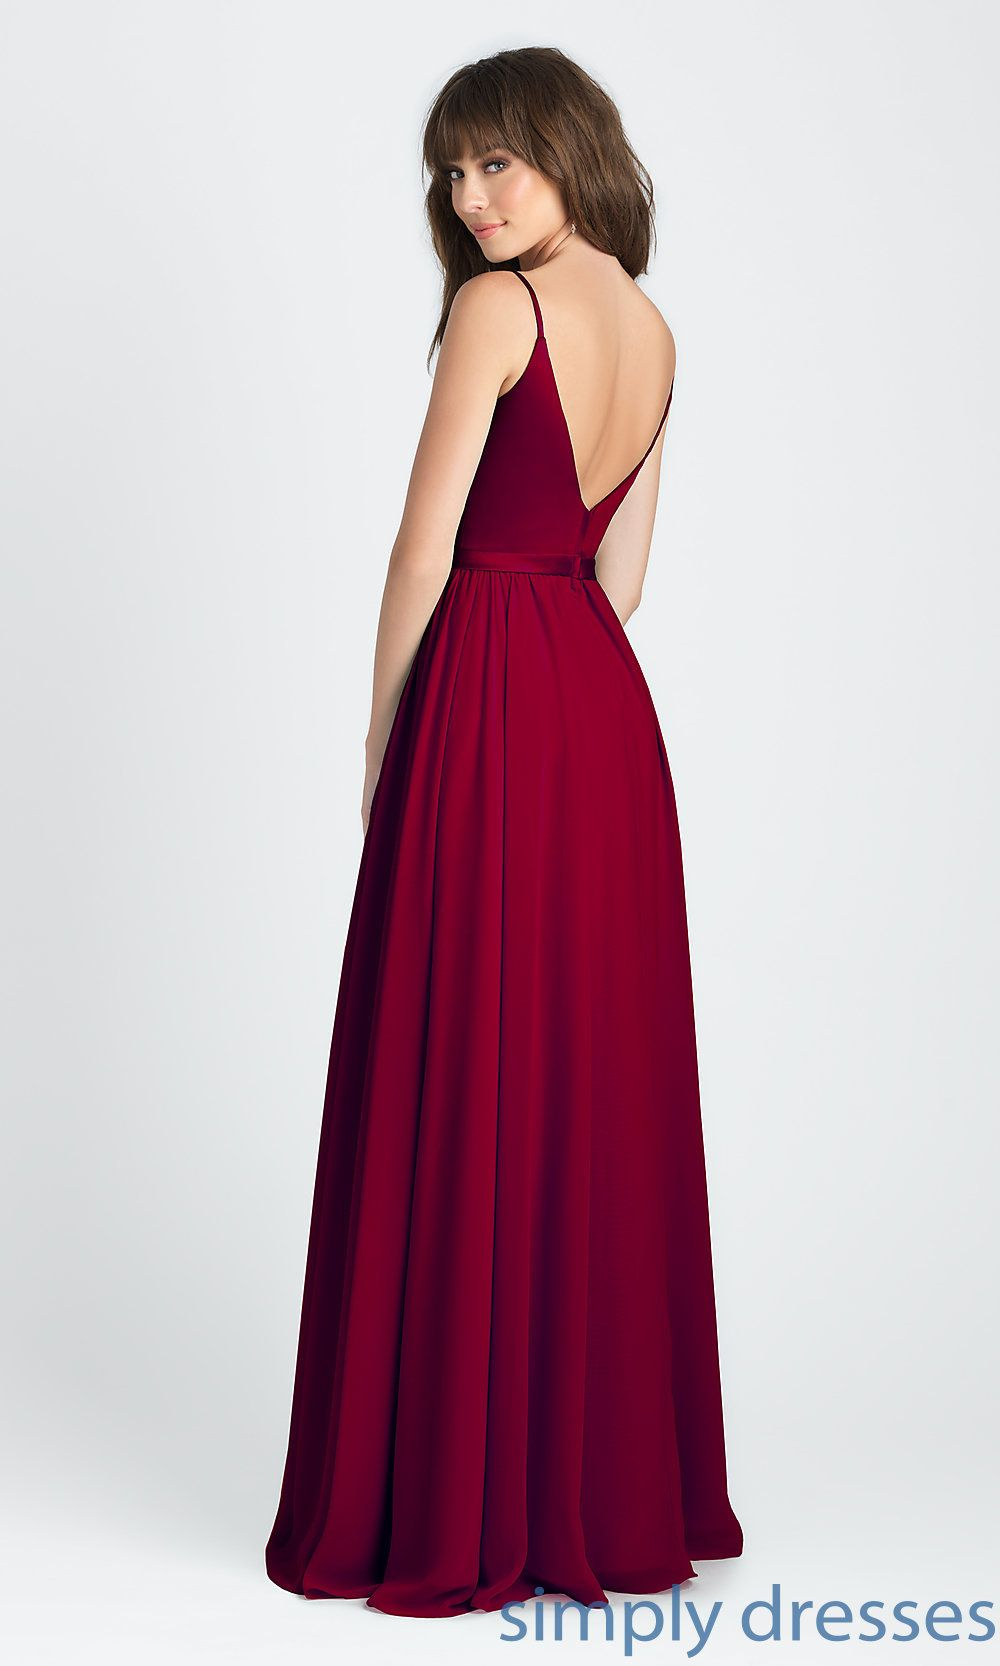 Classic Red Prom Dresses